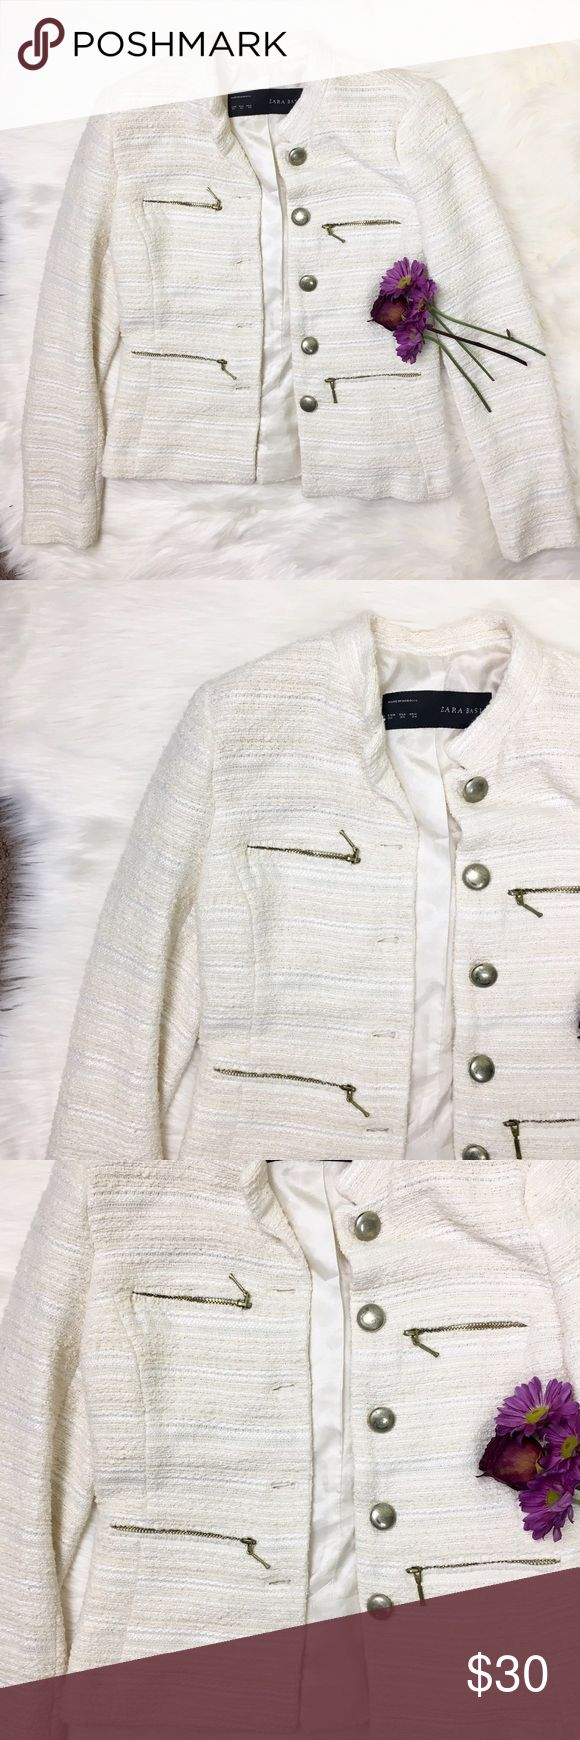 beautiful Zara jacket beautiful mixture of white and off white color, dress up or down! super cute addition to an outfit! Zara Jackets & Coats